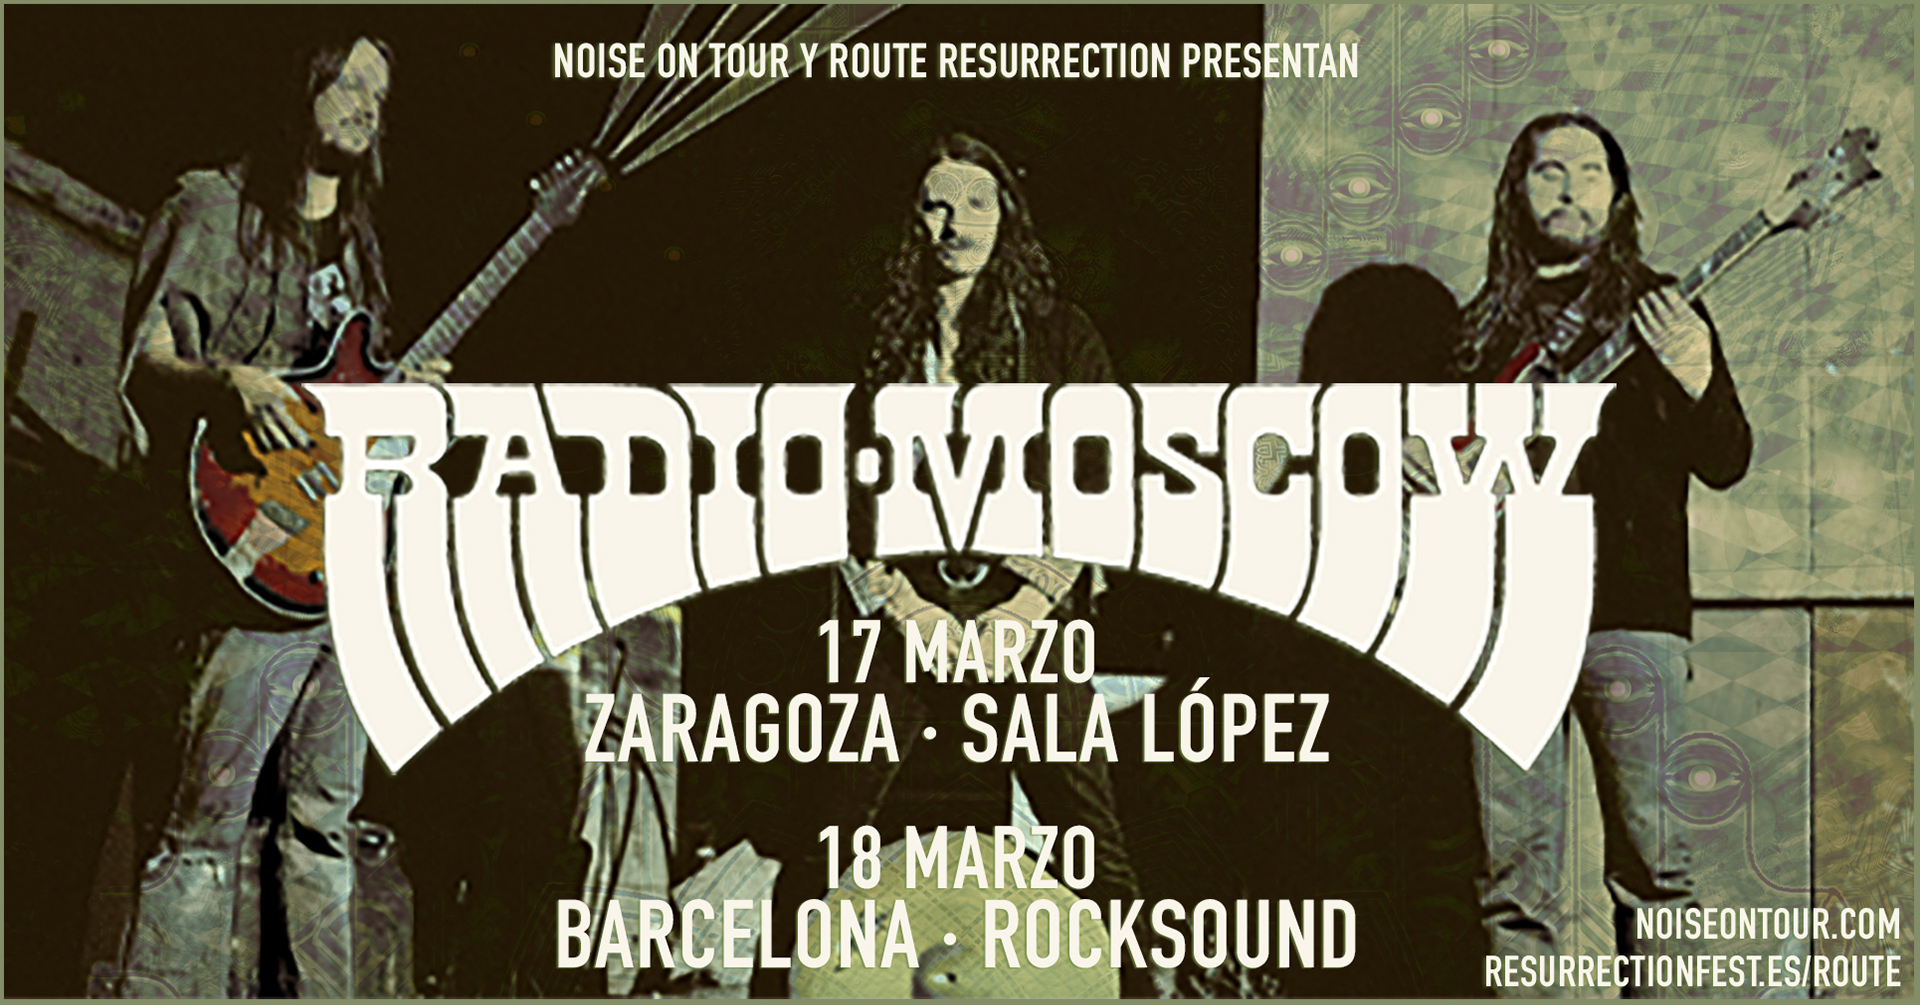 Route Resurrection Fest 2019 - Radio Moscow - Event